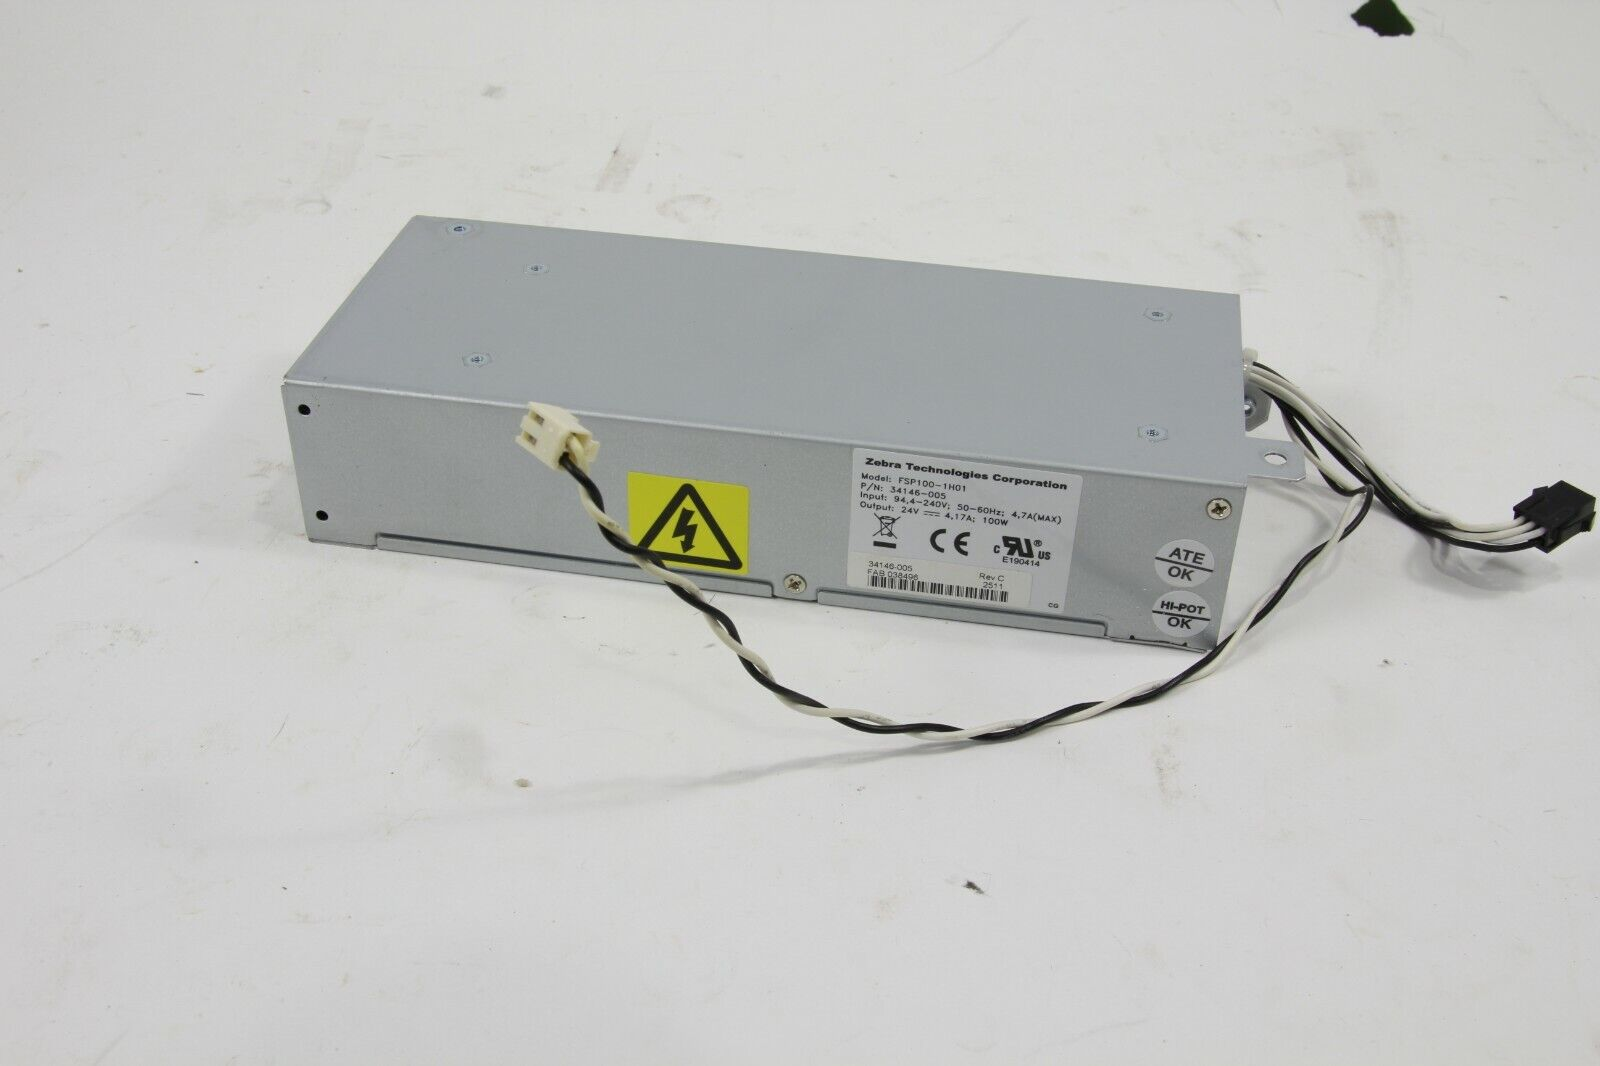 Zebra S4m Power Supply Kit Model Fsp100 1h01 G29600m Other Printer Scanner Accs Computers Tablets Networking Pumpenscout De